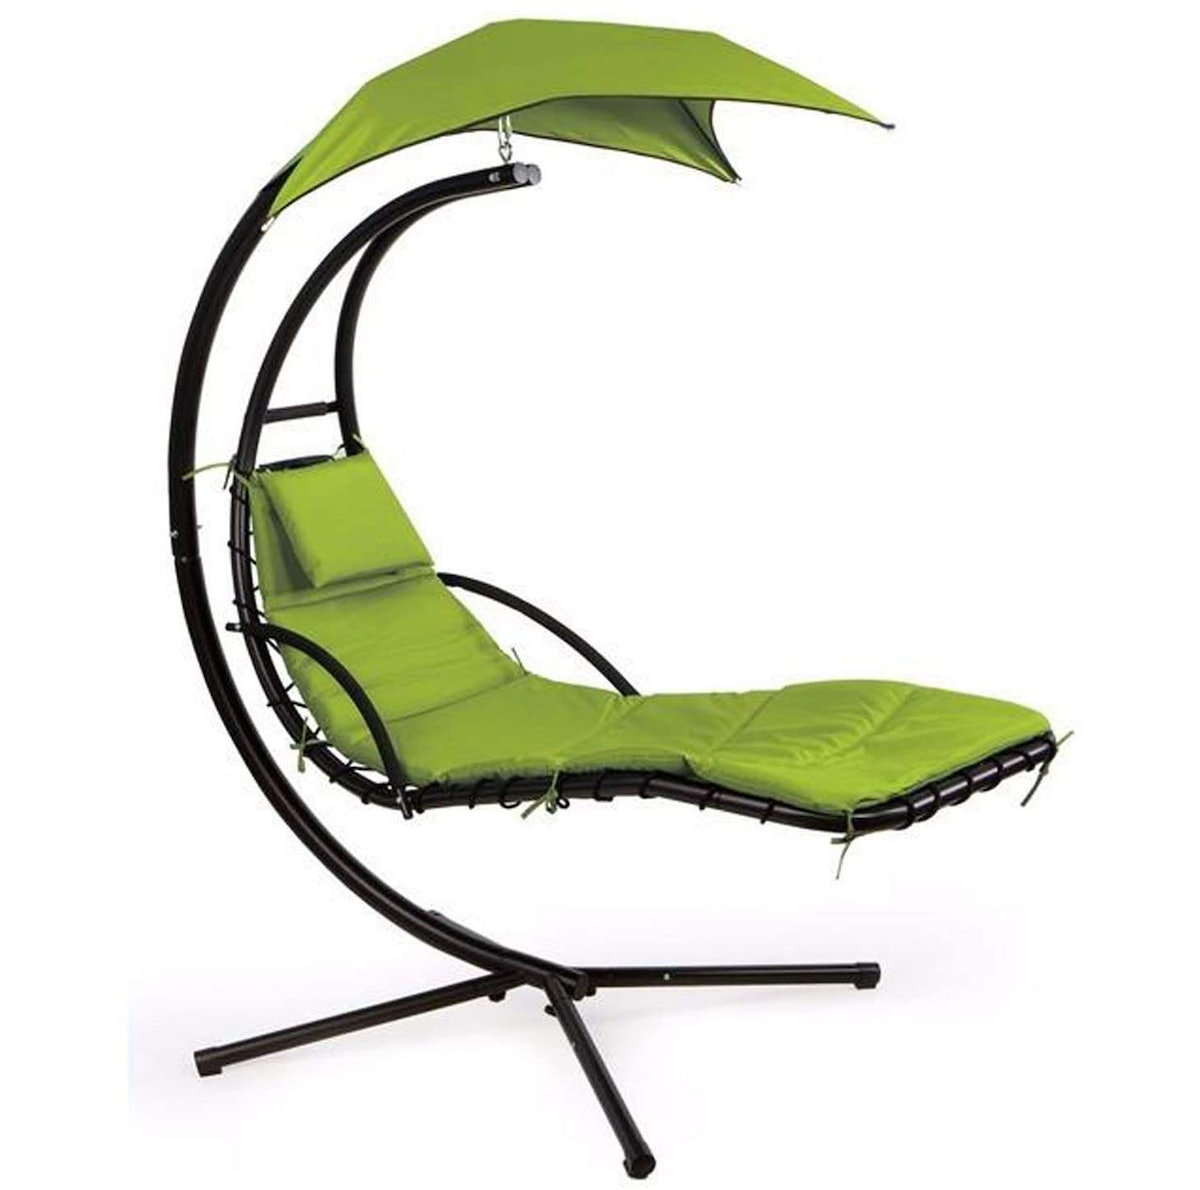 eZone Outdoor Hanging Lounge Chair